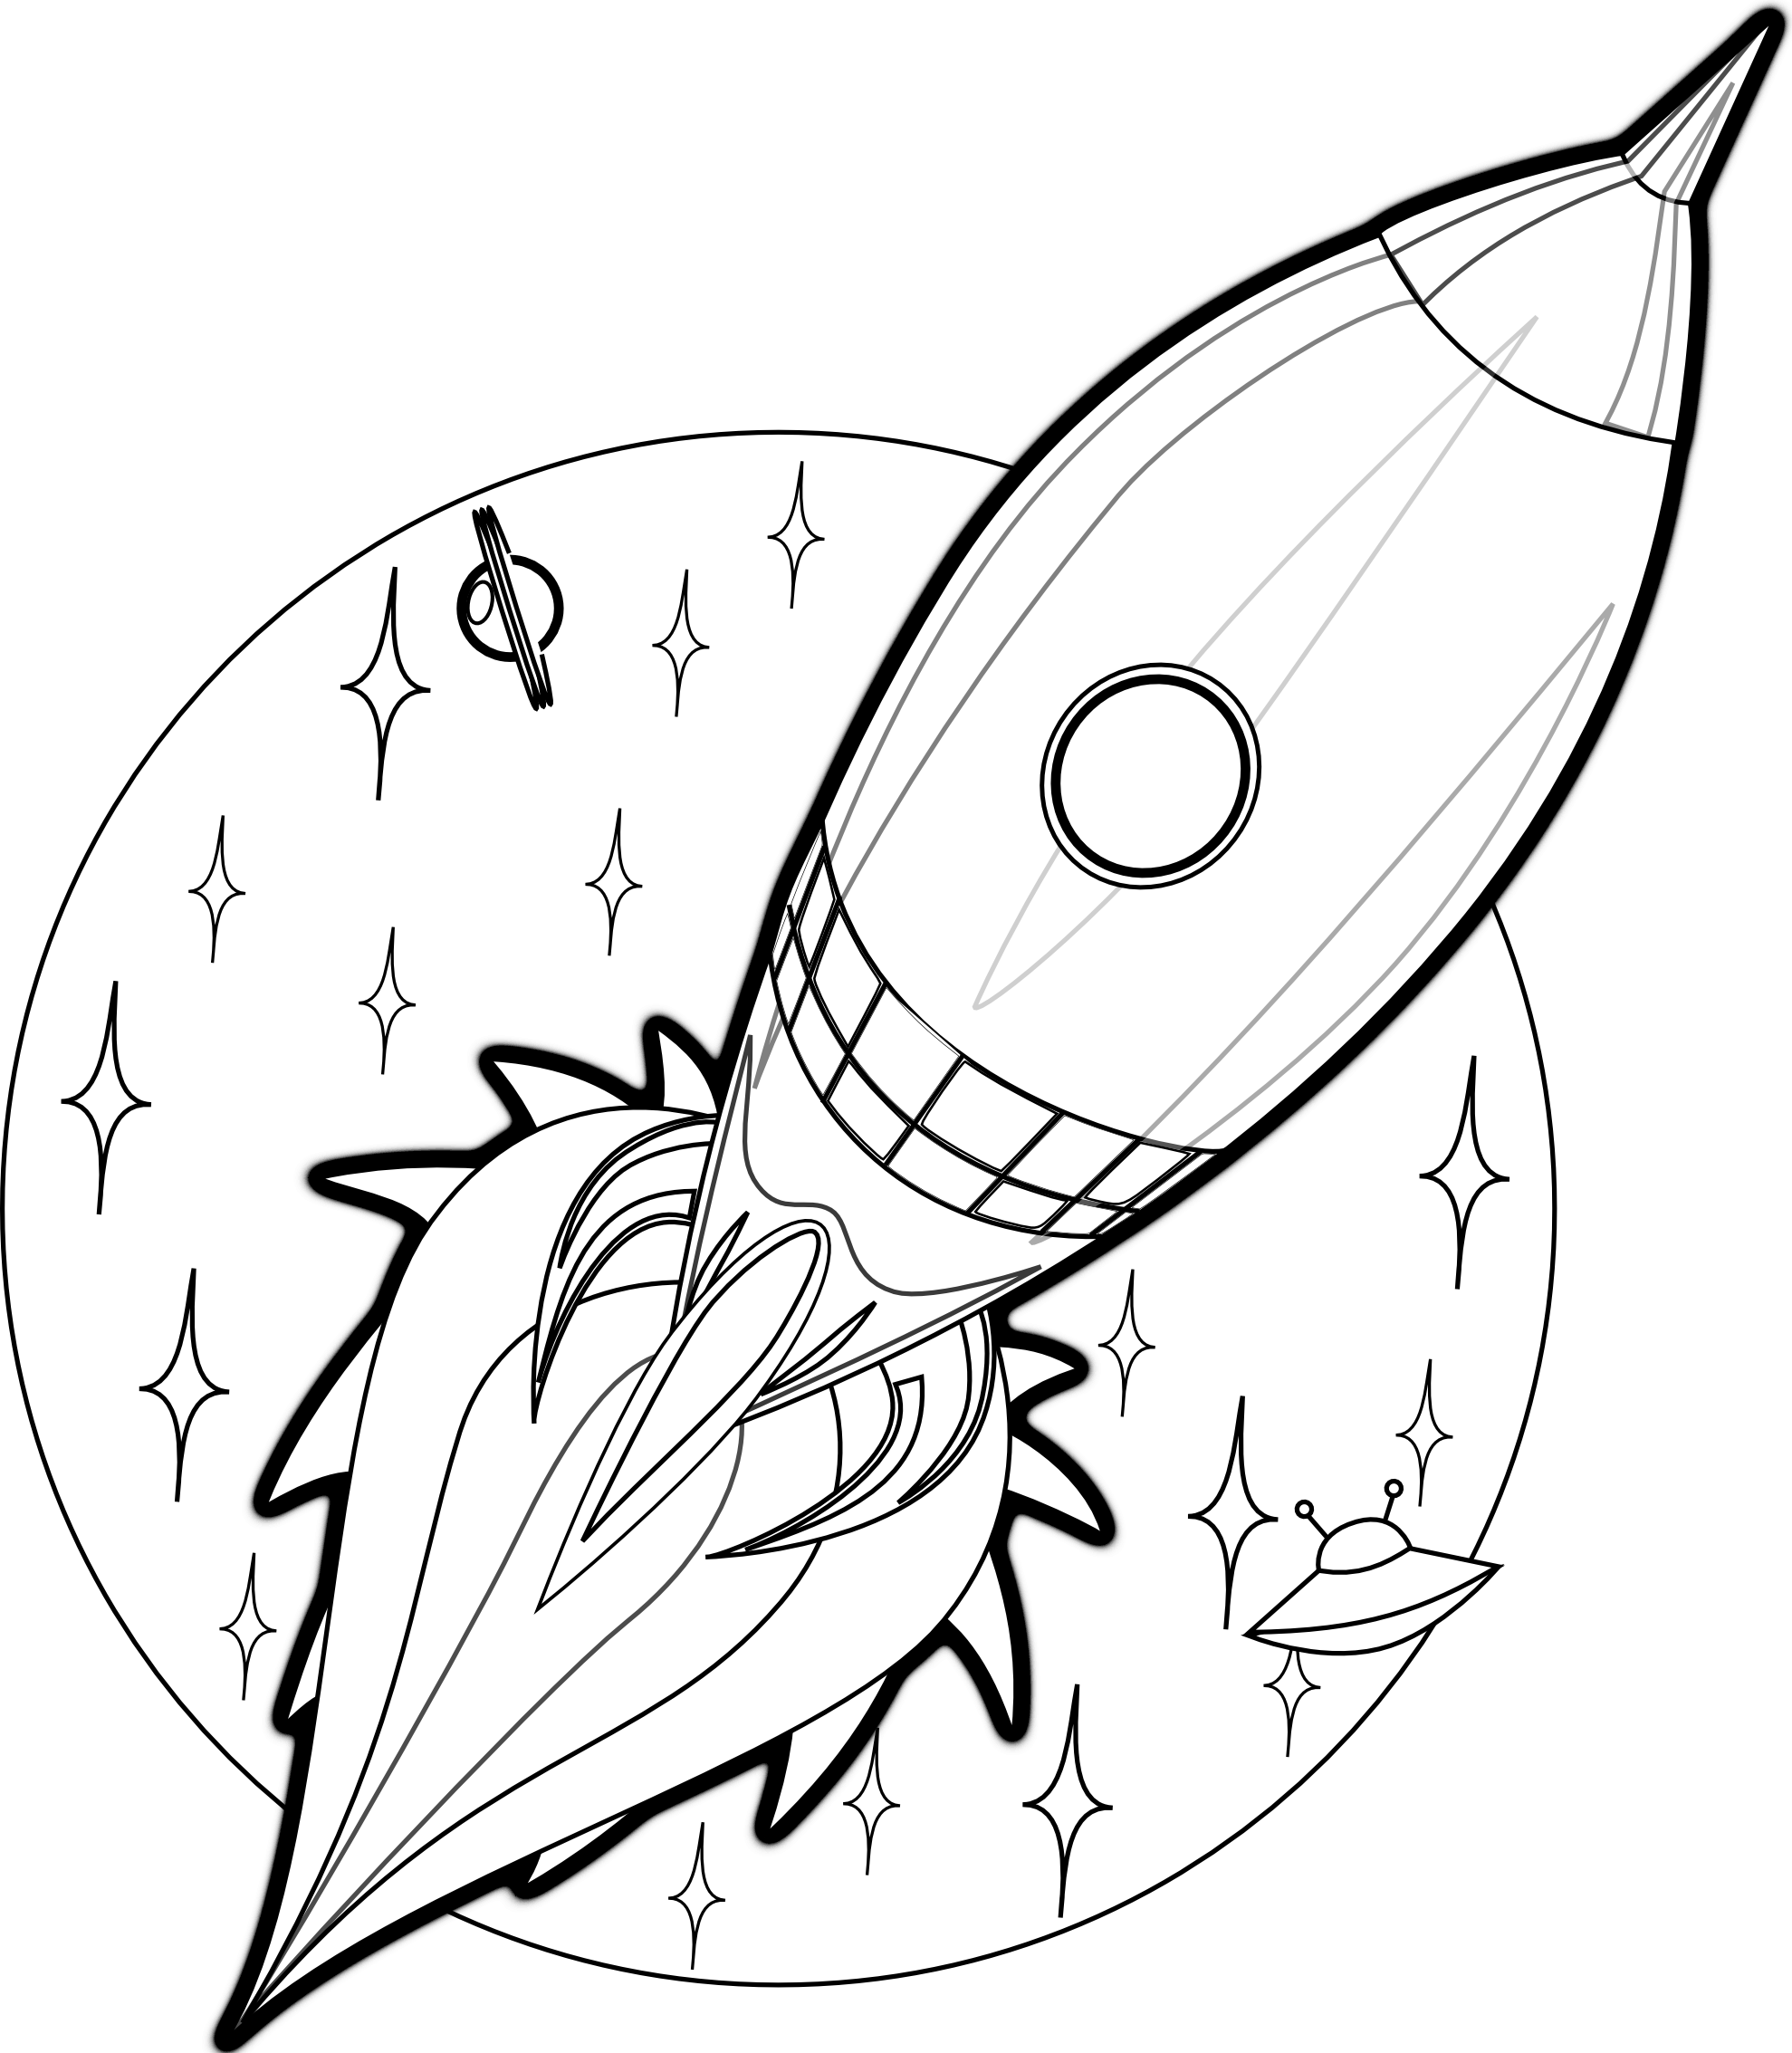 Free Printable Rocket Ship Coloring Pages For Kids   Vbs